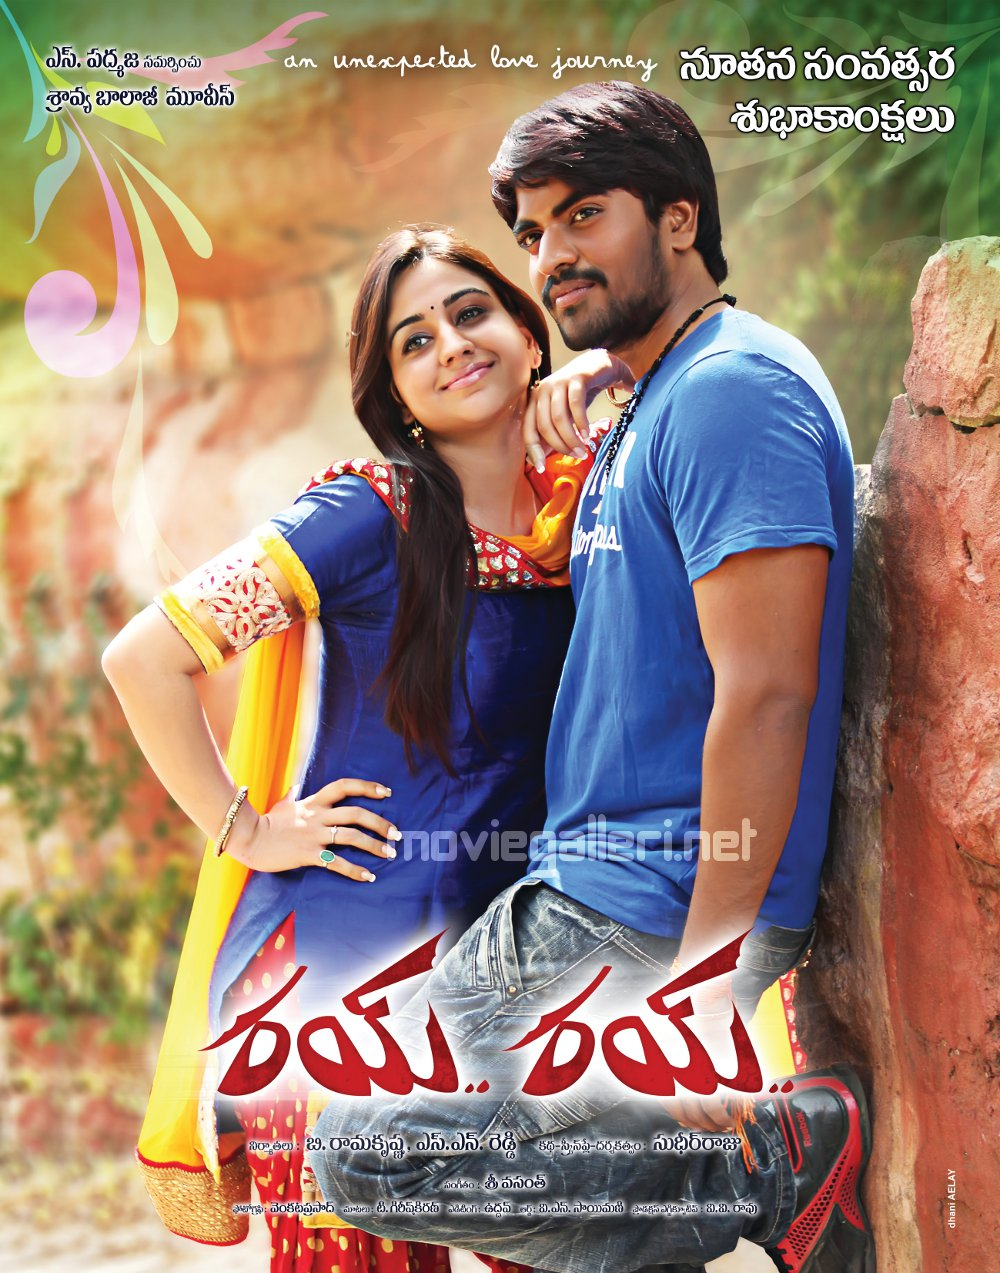 Balupu Full Movie 2013 Telugu Watch Online